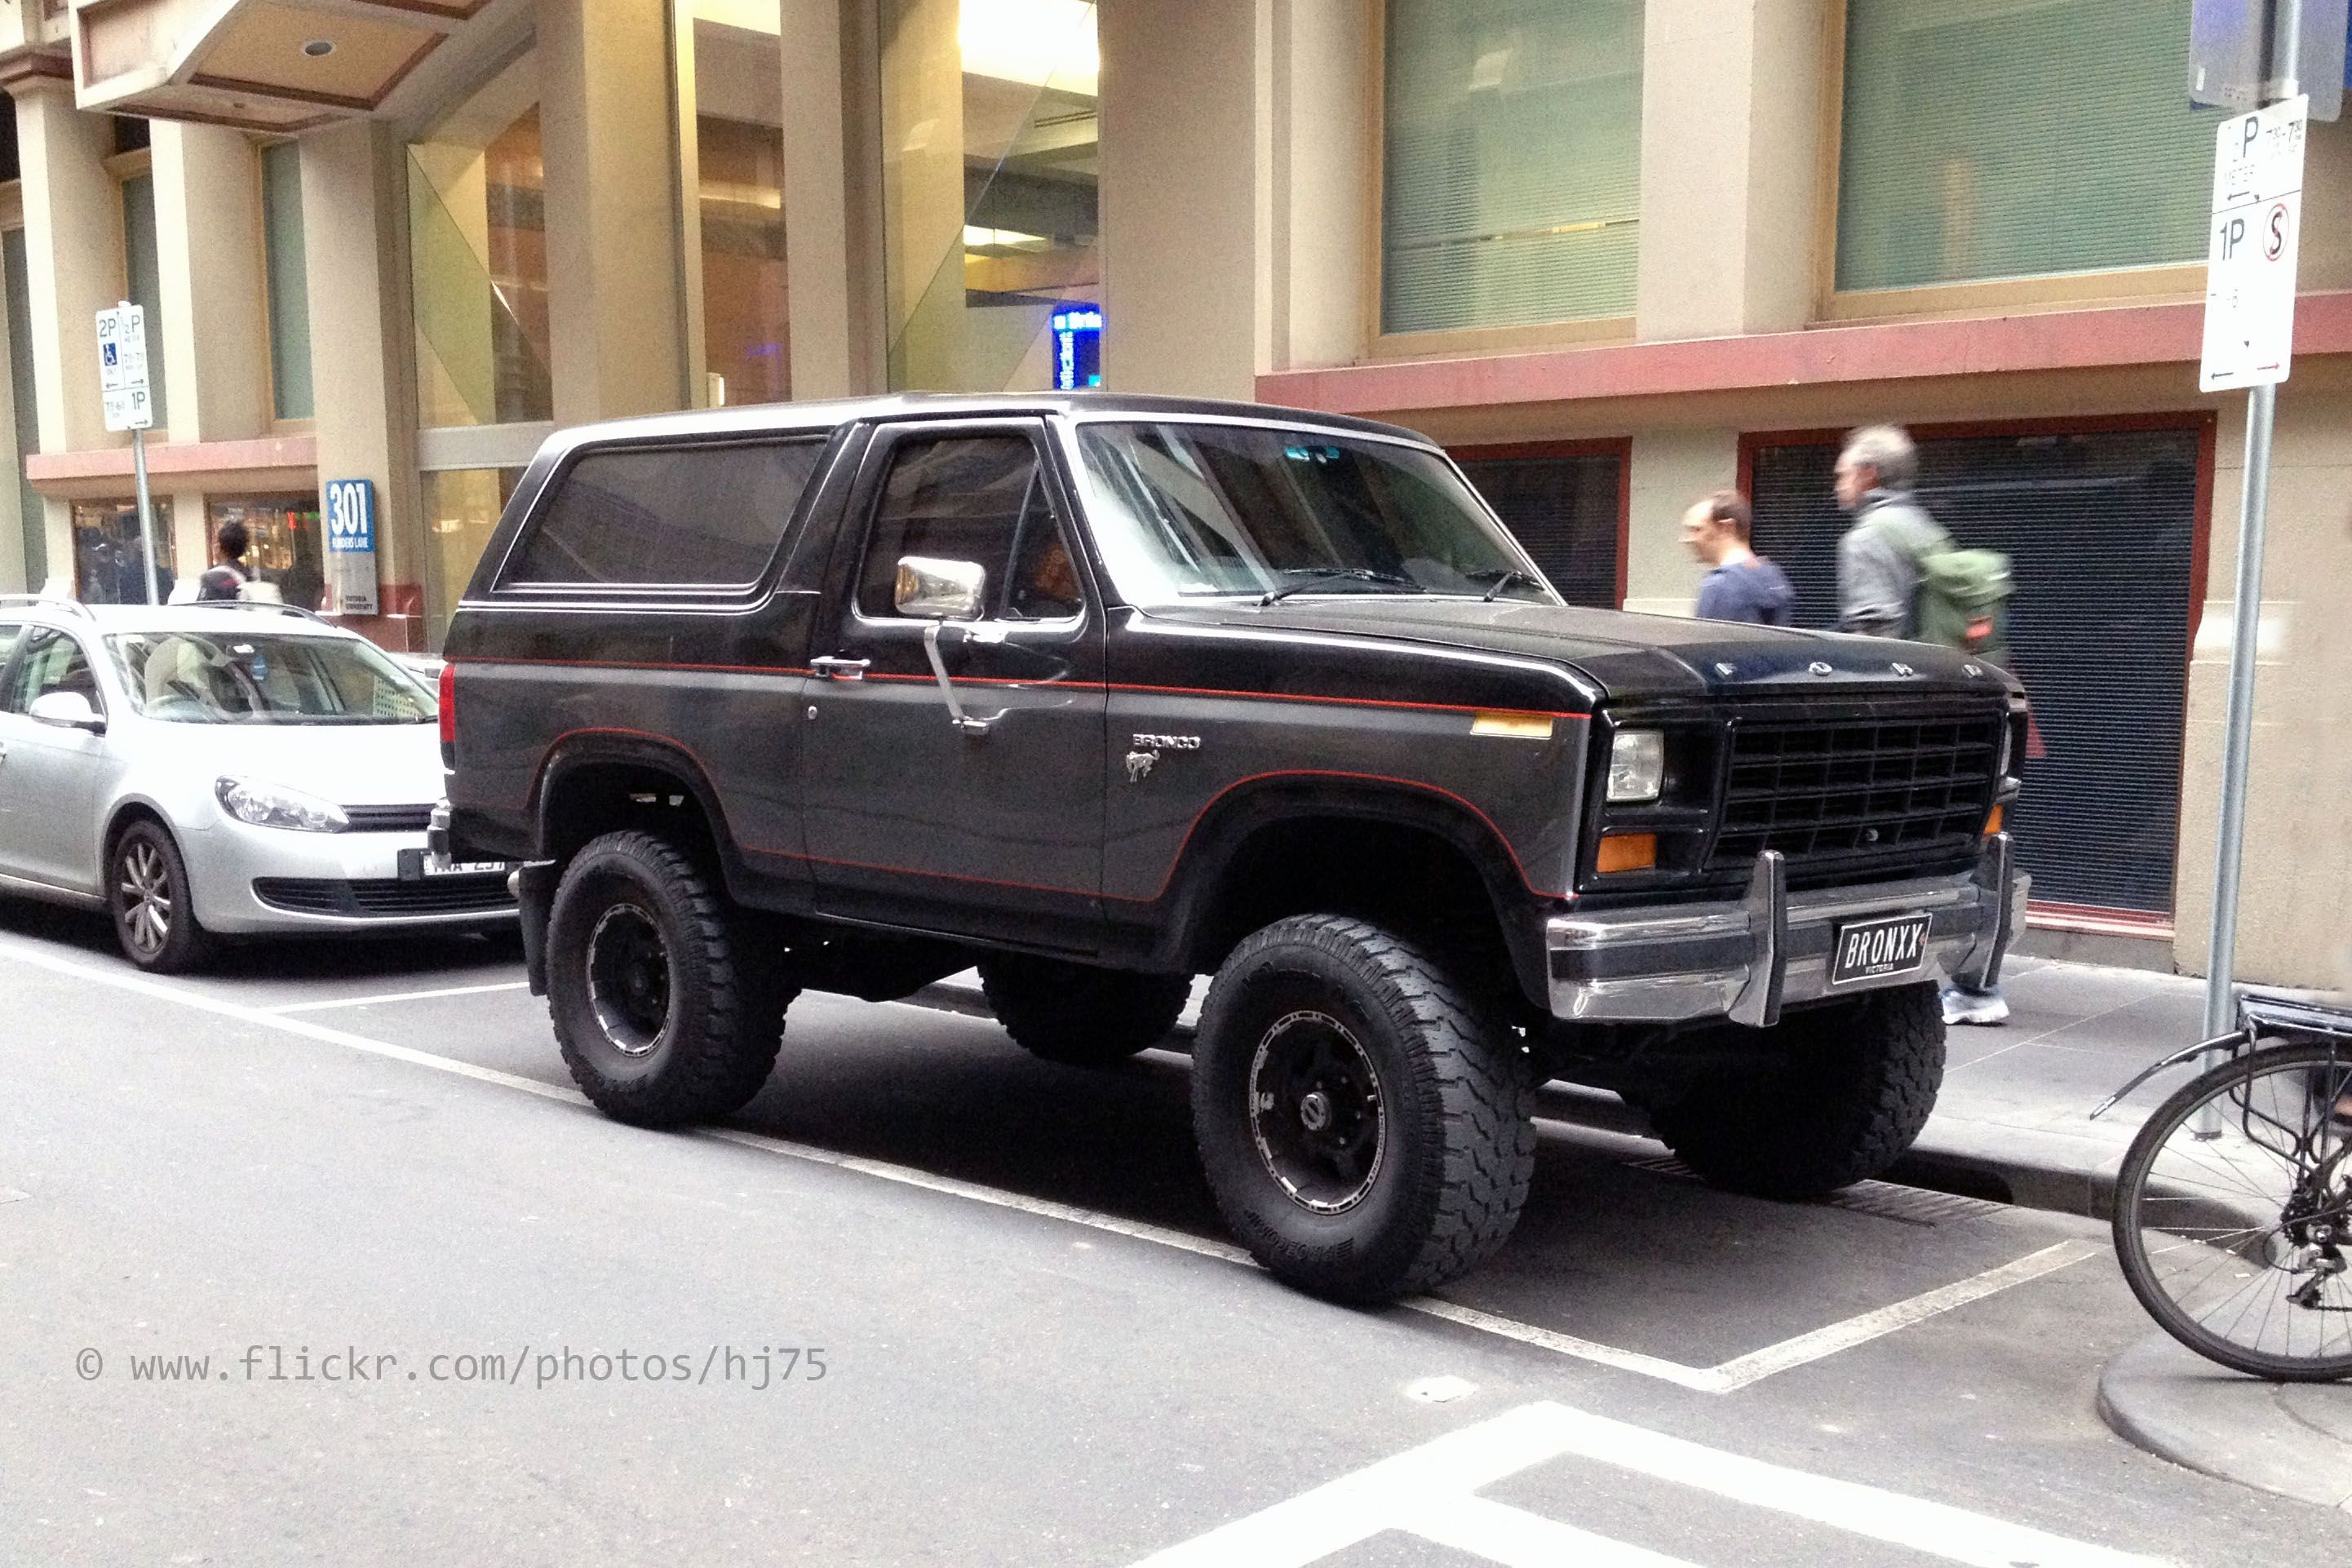 The idea behind the Bronco began with Ford product manager